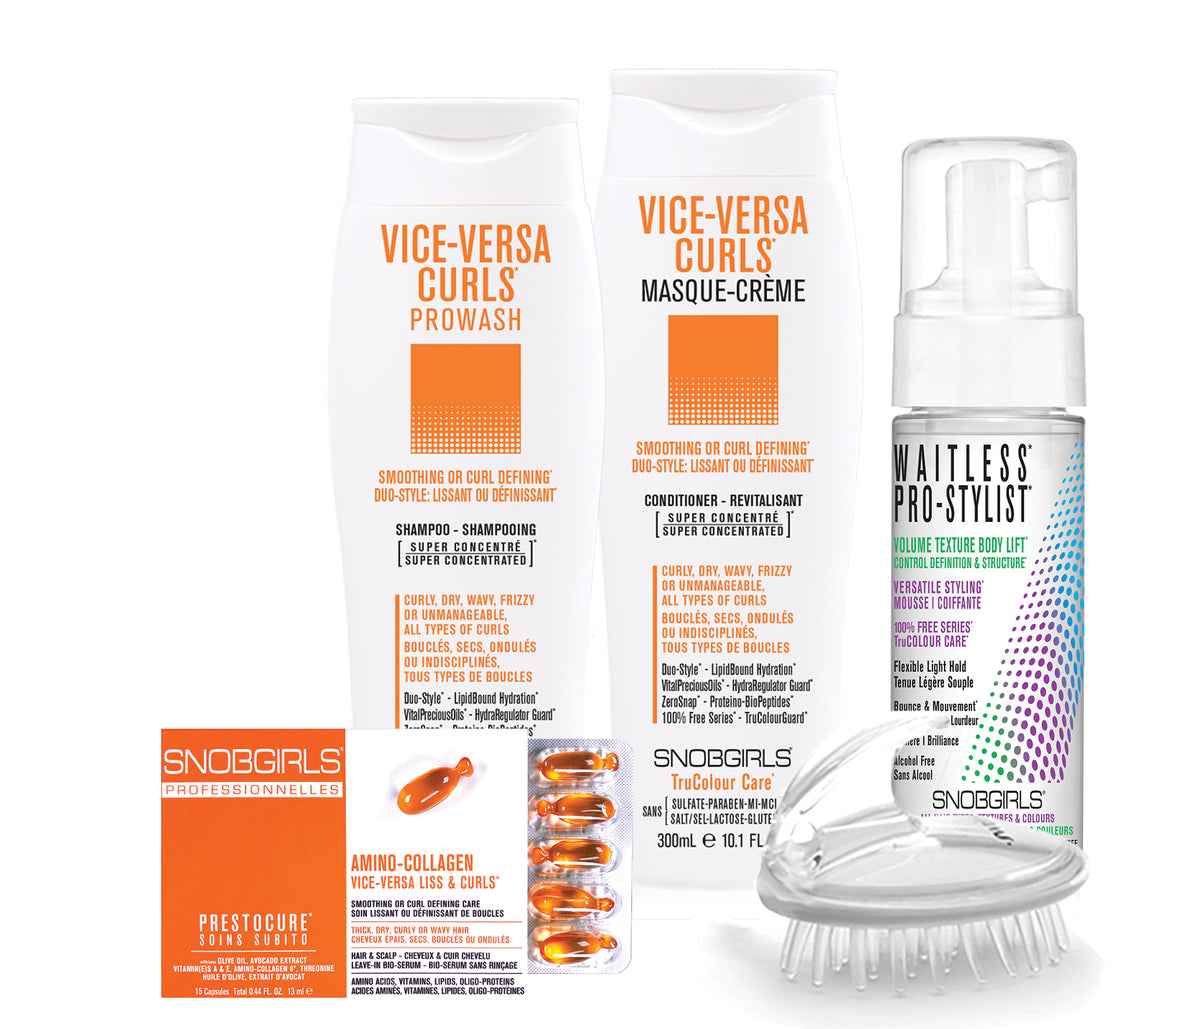 VICE-VERSA CURLS BOX DUO-STYLE: SMOOTHING OR CURL DEFINING Bundle - SNOBGIRLS.com